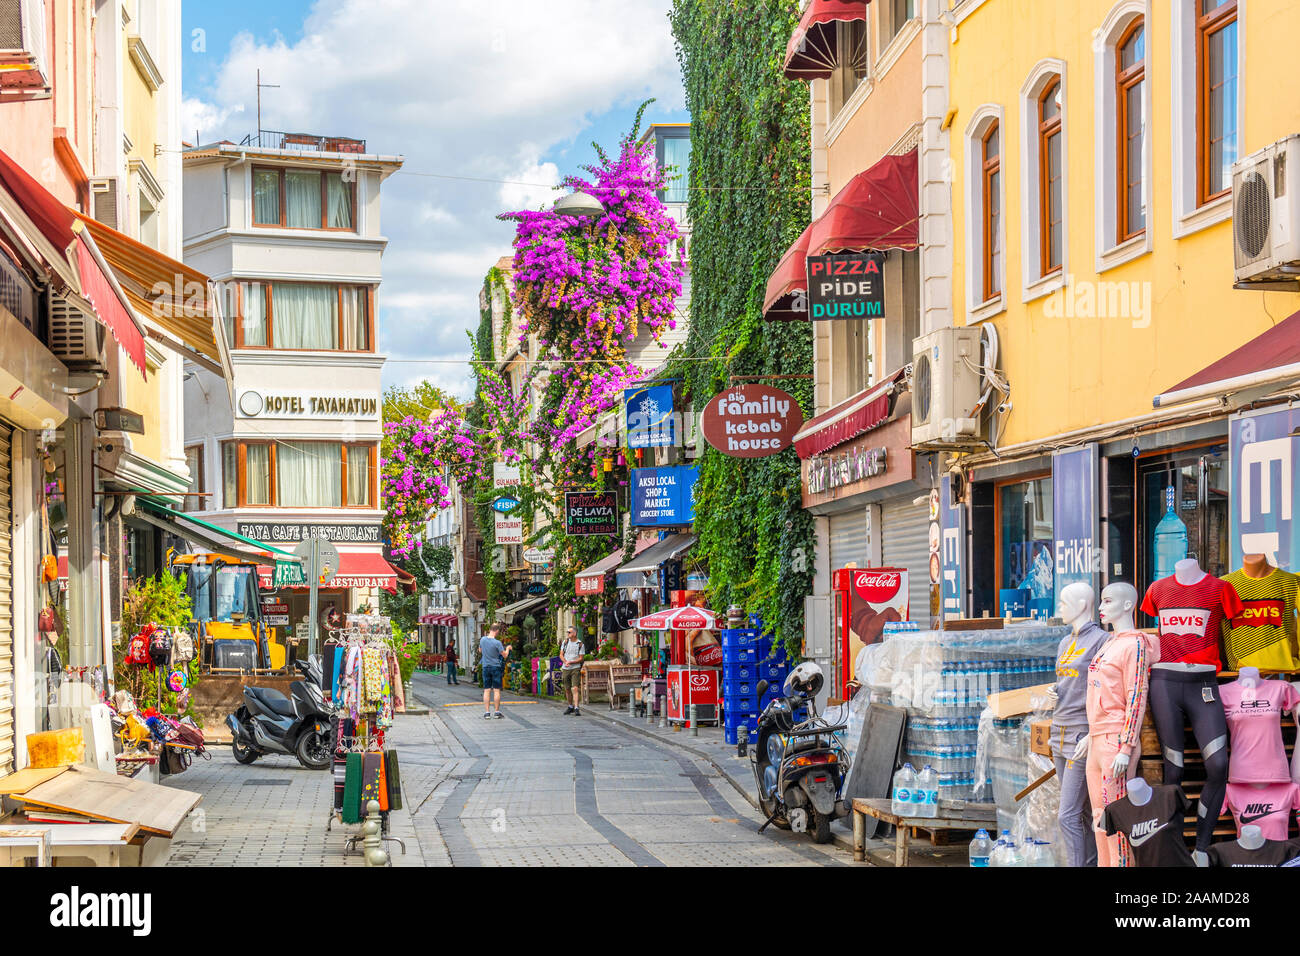 A colorful street of shops in the Sultanahmet District of Istanbul, Turkey, with lush plants and bougainvillea flowers adorning the walls. Stock Photo